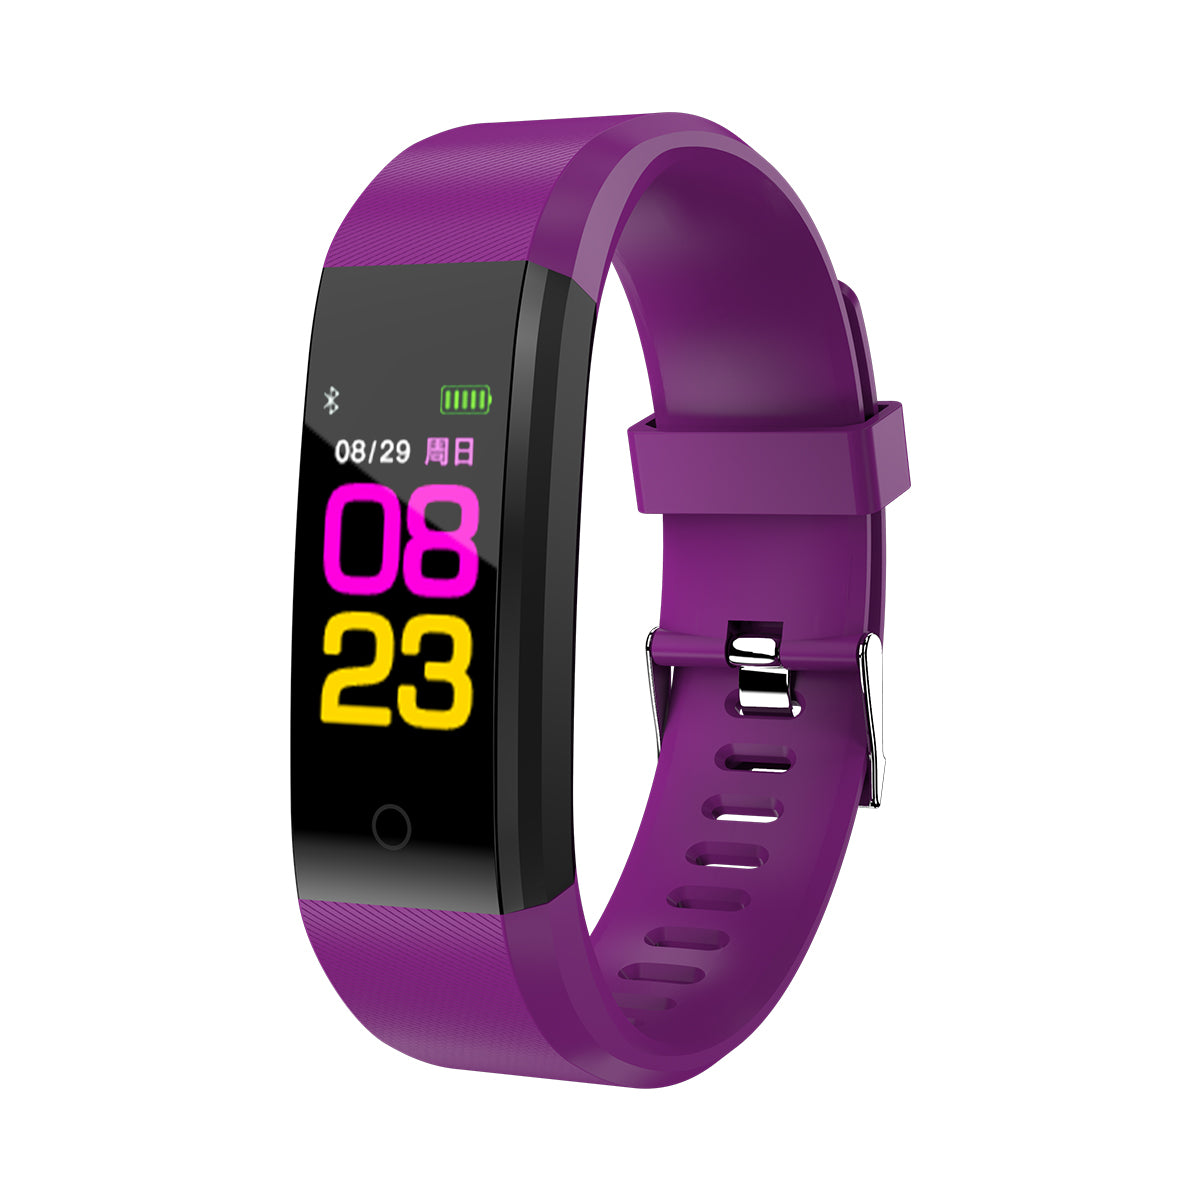 Bakeey B05 0.96 Inch TFT Color Display Smart Bracelet Heart Rate Blood Pressure Monitor Sport Watch